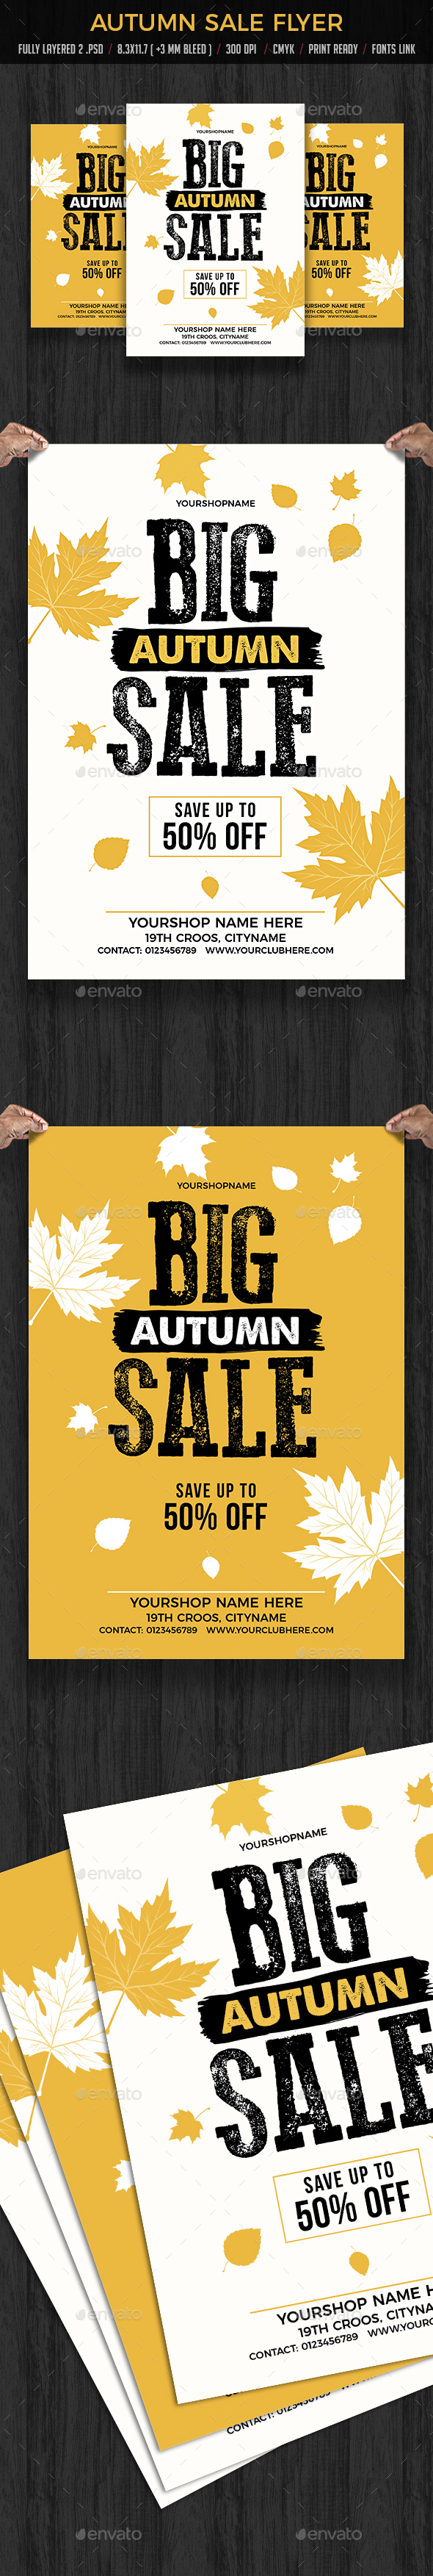 Autumn / Fall Sale Flyers Poster - Flyers Print Templates